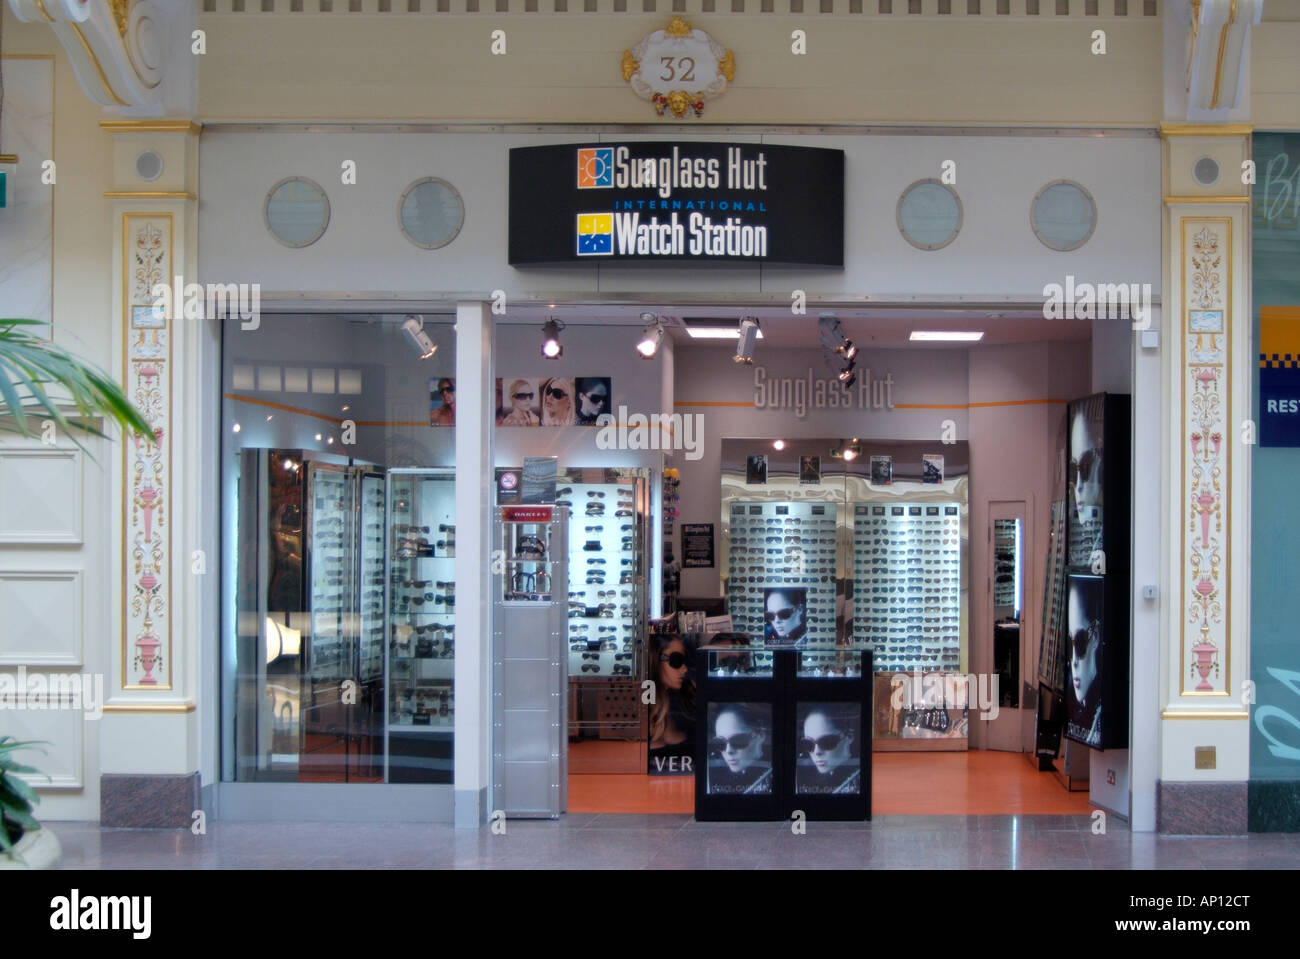 Sunglass hut Watch station sun glasses optician optical shade  eye sight protect protection dolce cabbana time piece - Stock Image